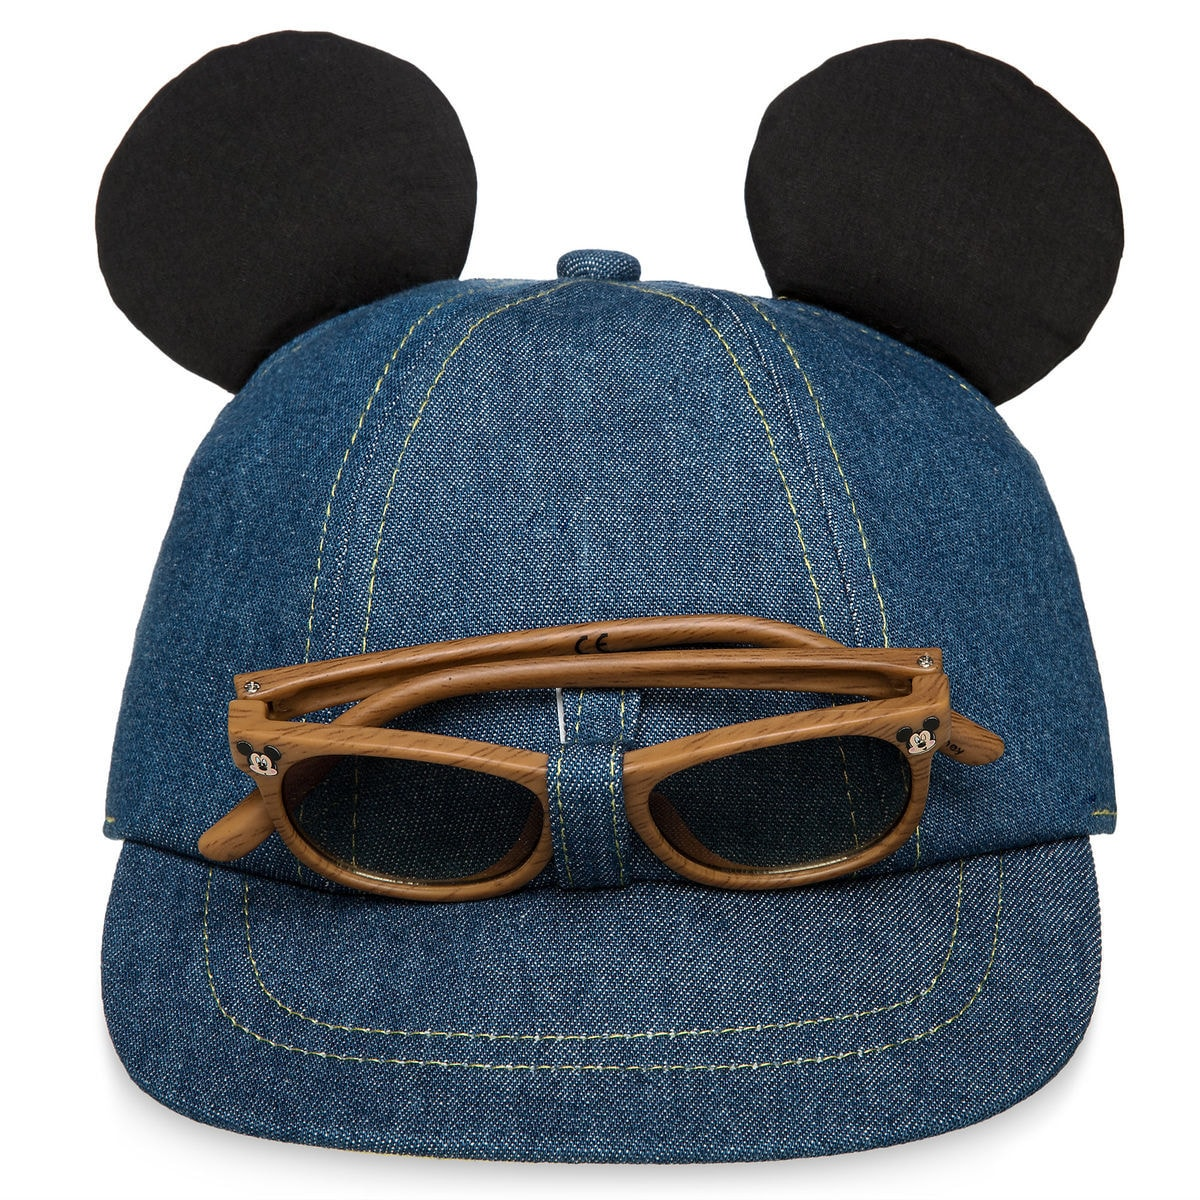 80ece260a73 Product Image of Mickey Mouse Hat and Sunglasses Set for Baby   1